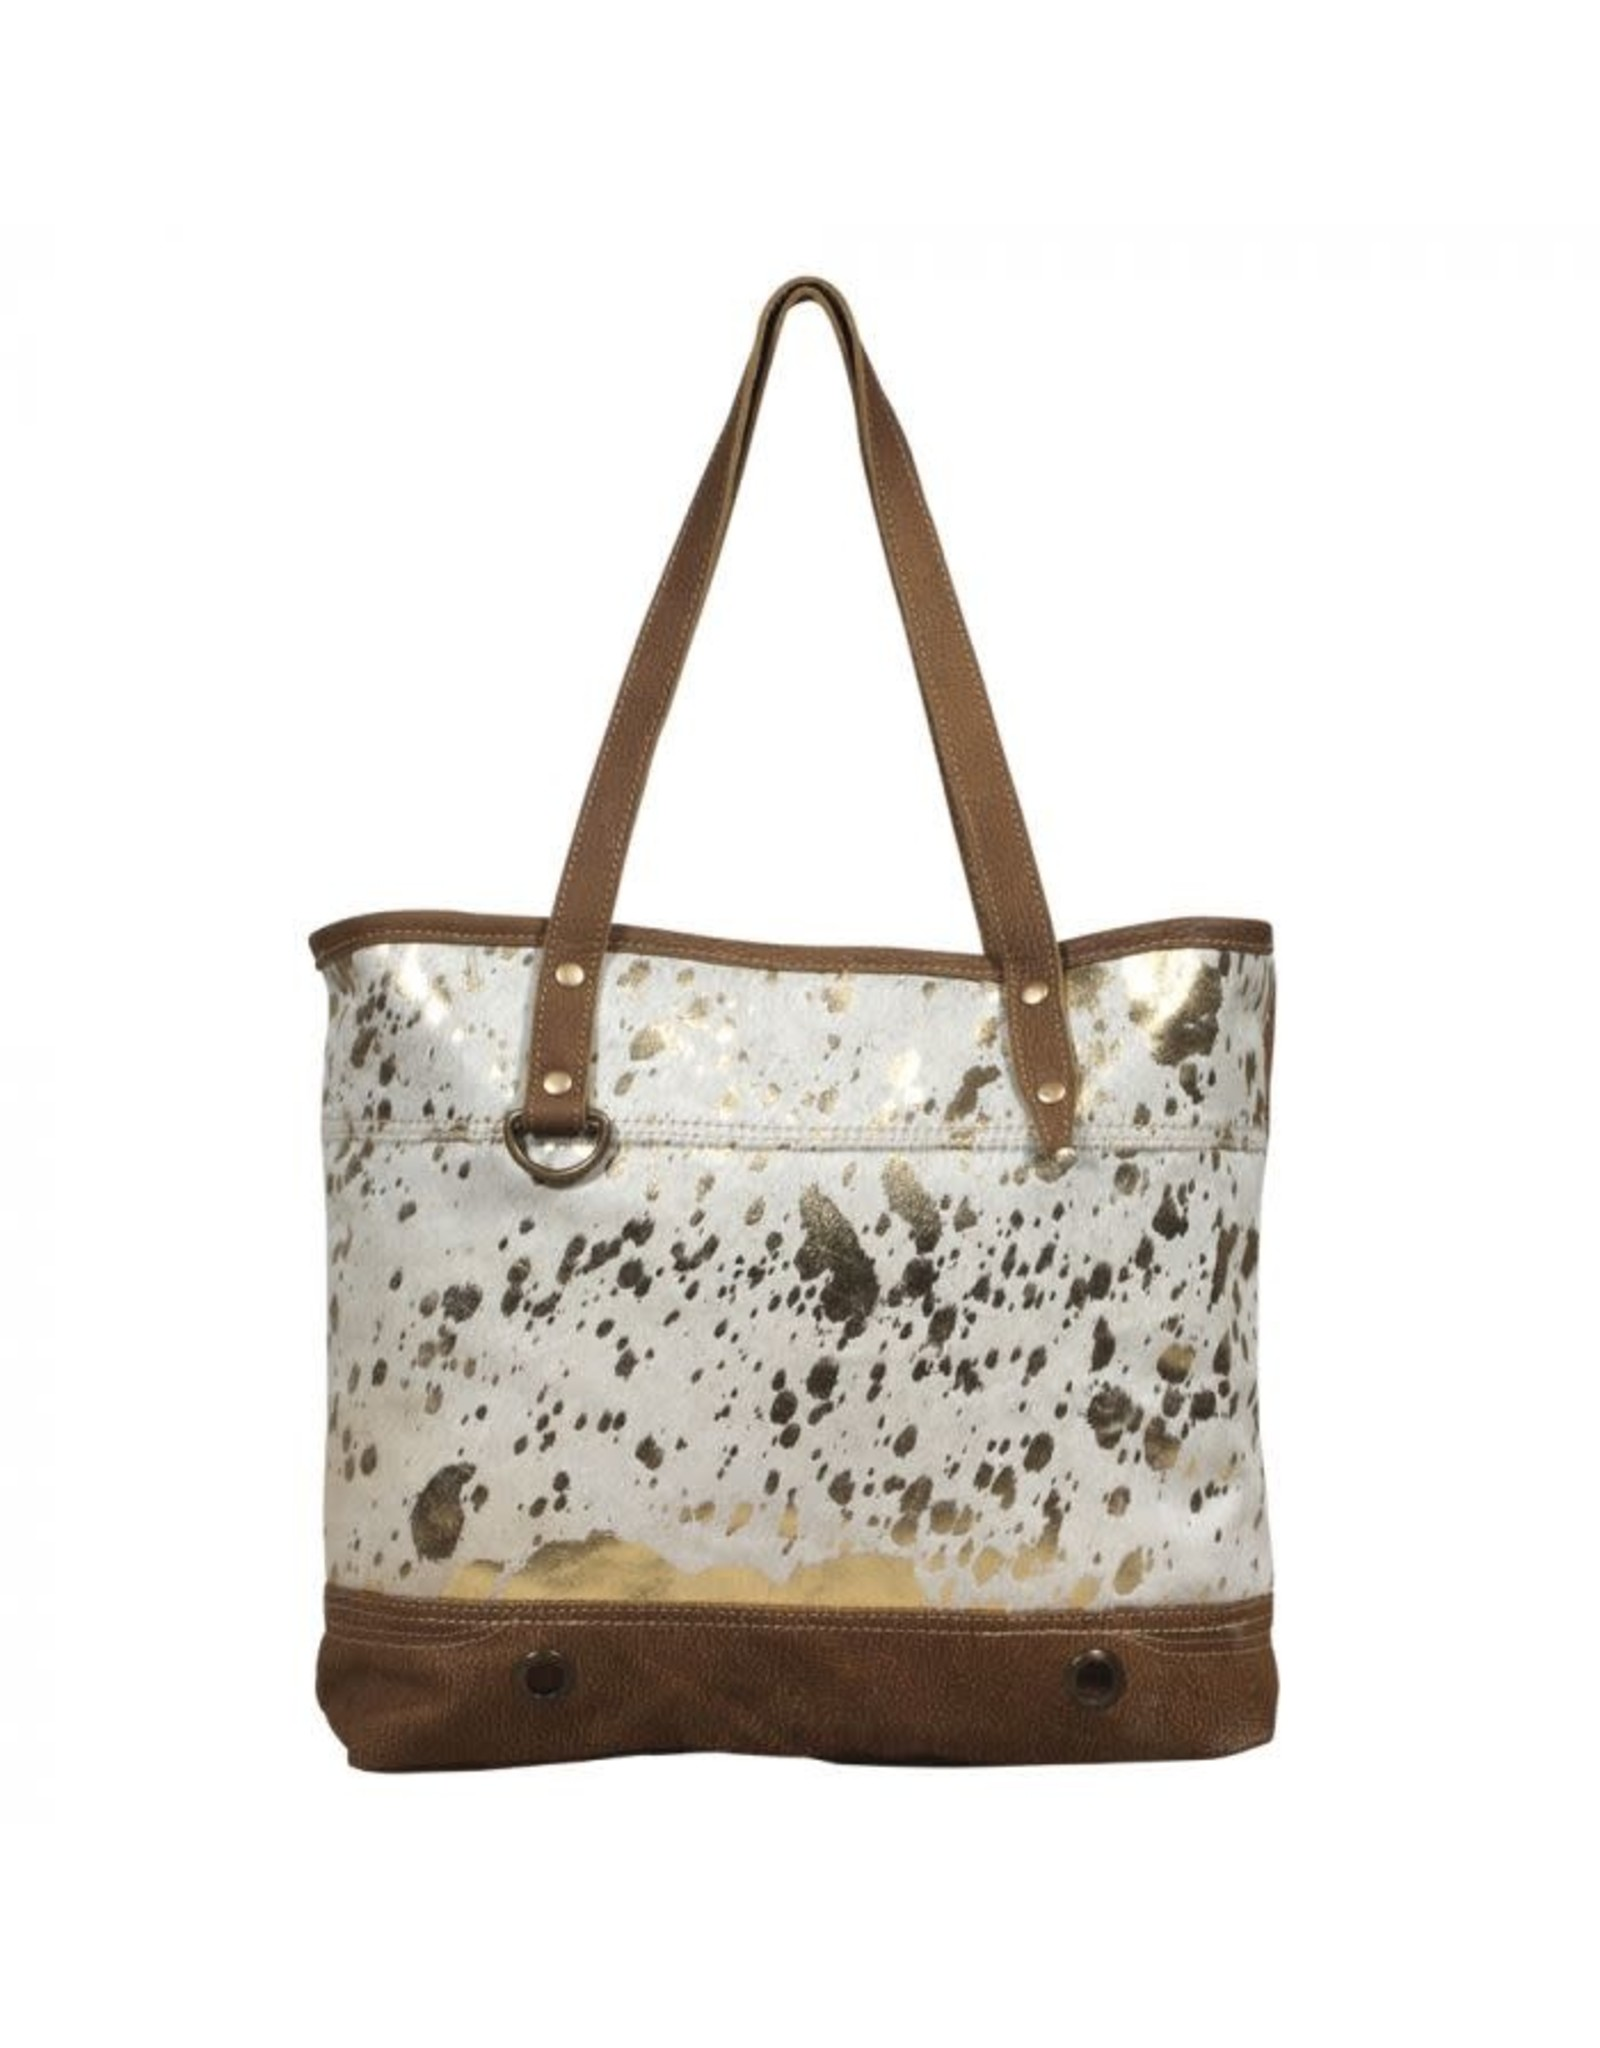 Largish Leather Tote